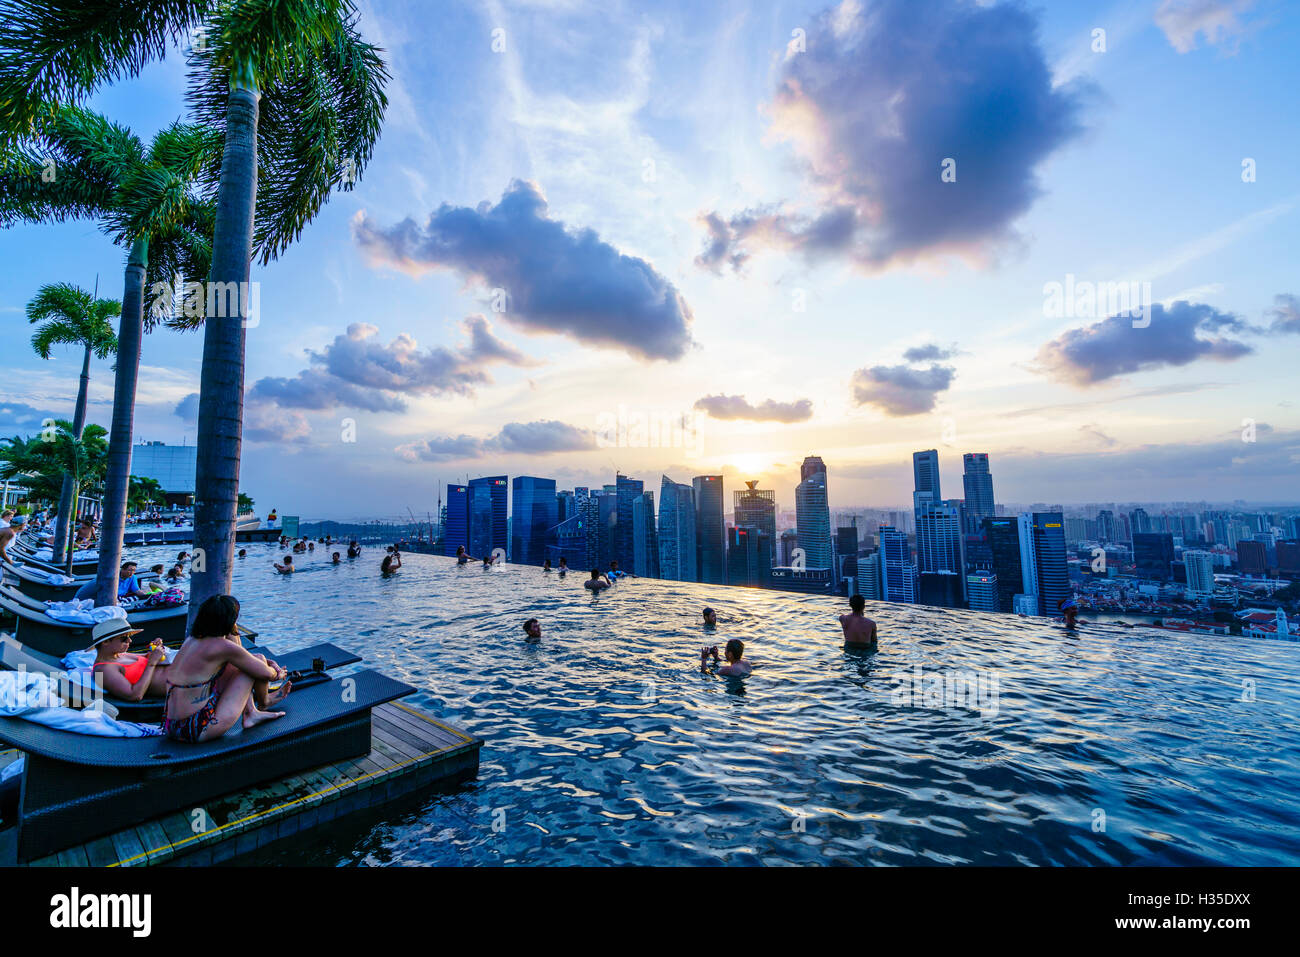 infinity pool auf dem dach des das marina bay sands hotel mit spektakul rem blick ber die. Black Bedroom Furniture Sets. Home Design Ideas